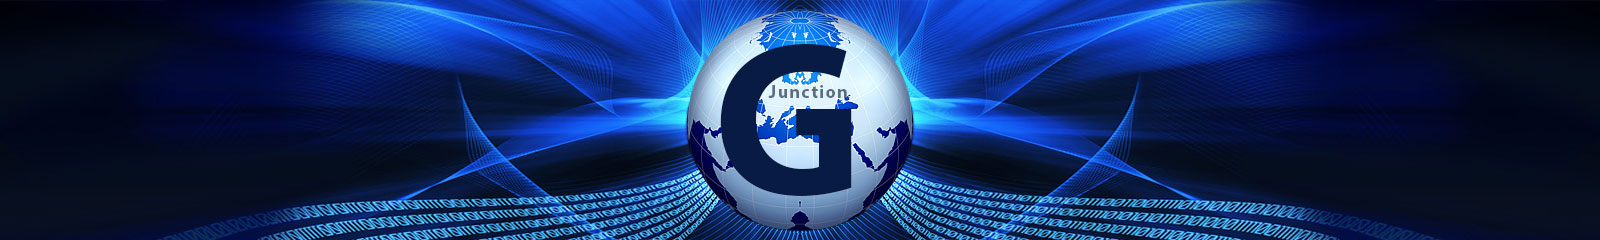 Gospel Junction